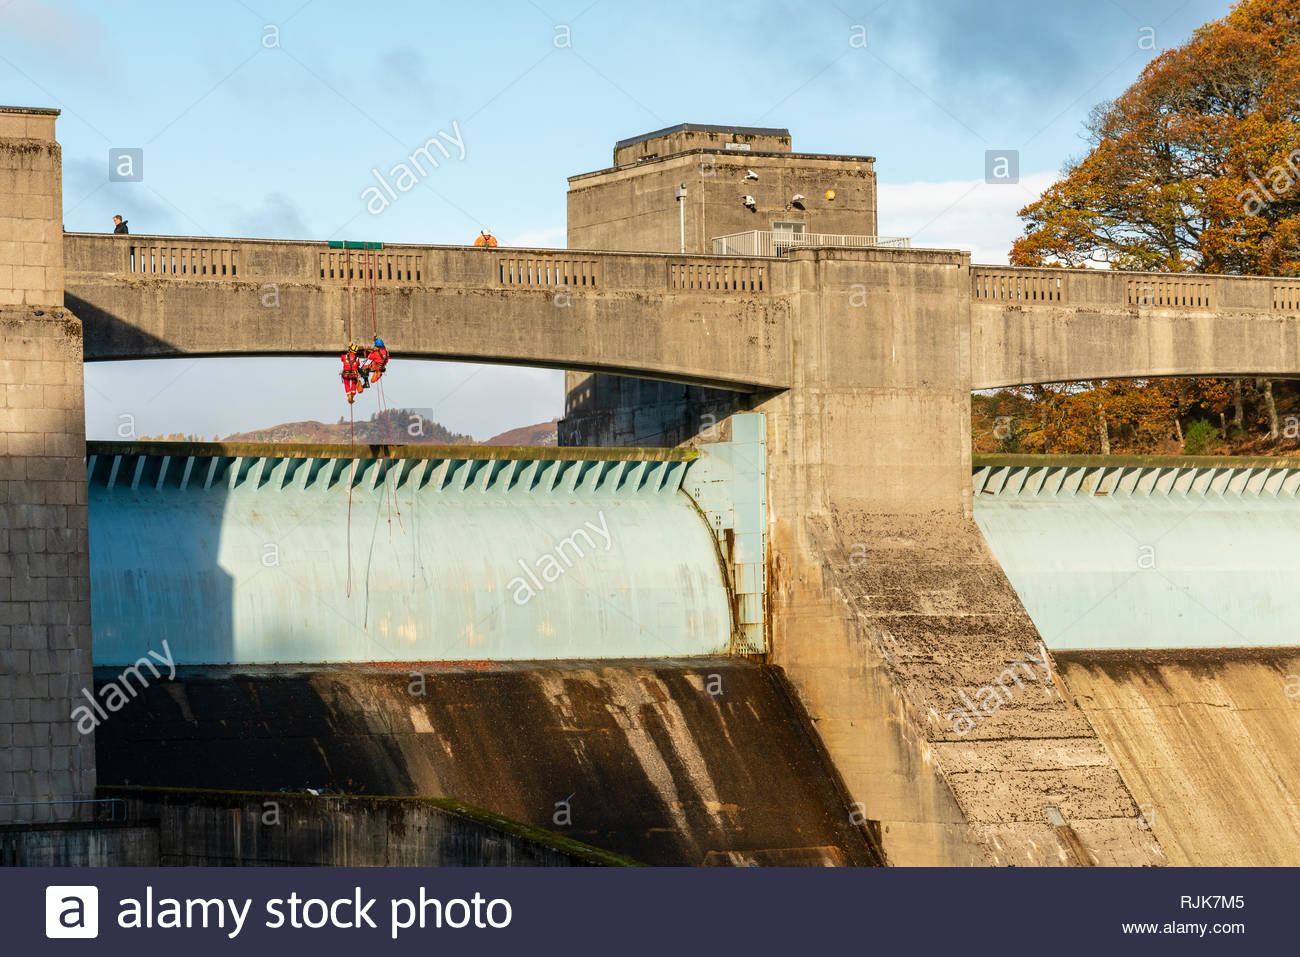 Workers making repairs to Pitlochry dam wall, Perthshire, Scotland Stock Photo